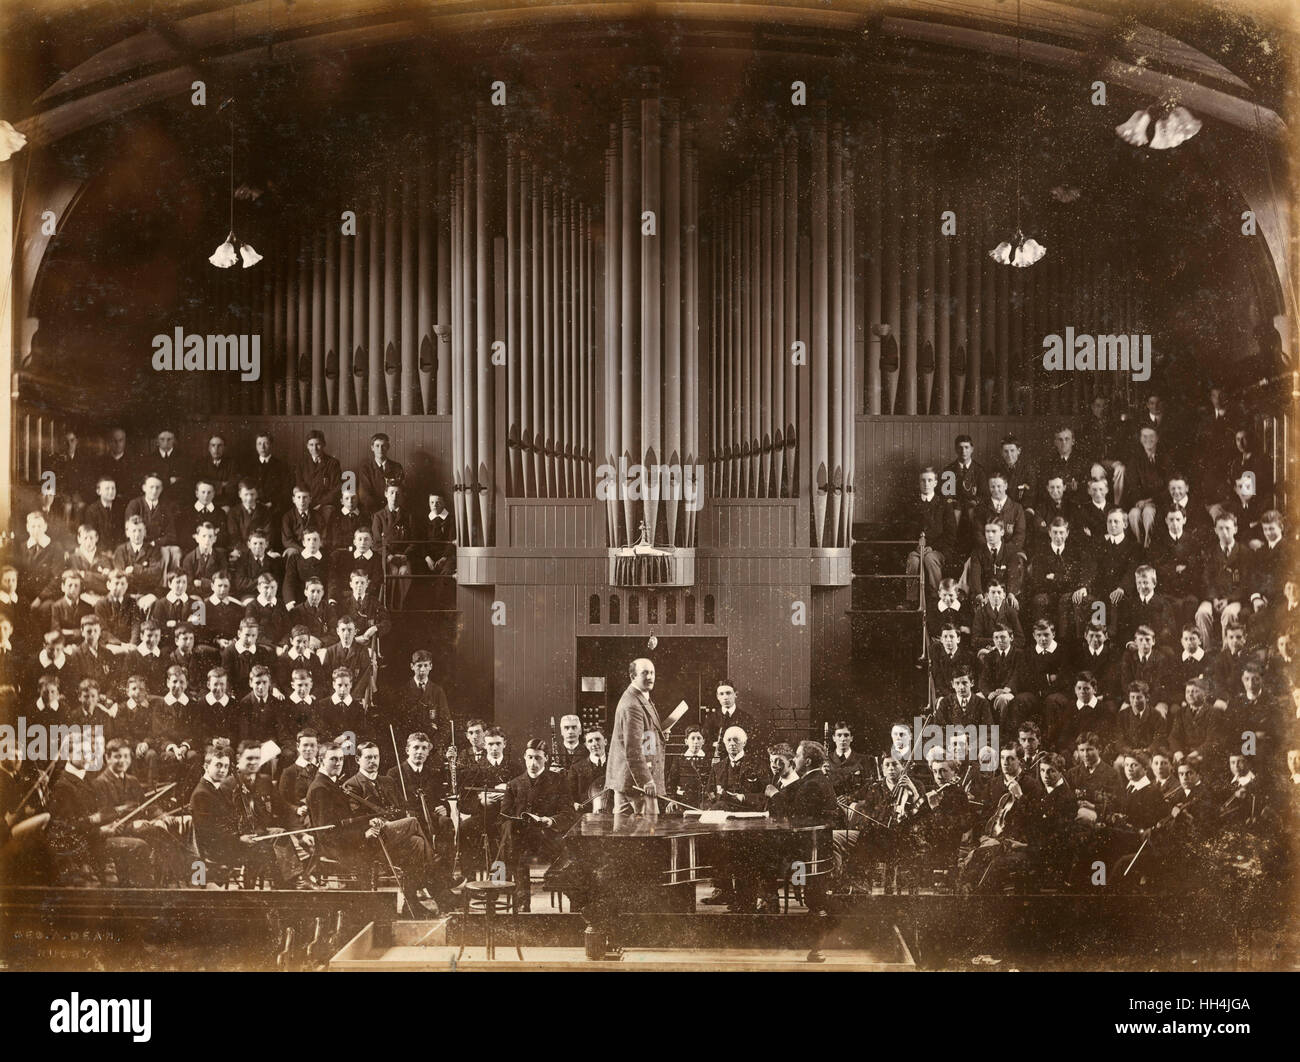 The orchestra of Rugby School during the Edwardian era. - Stock Image